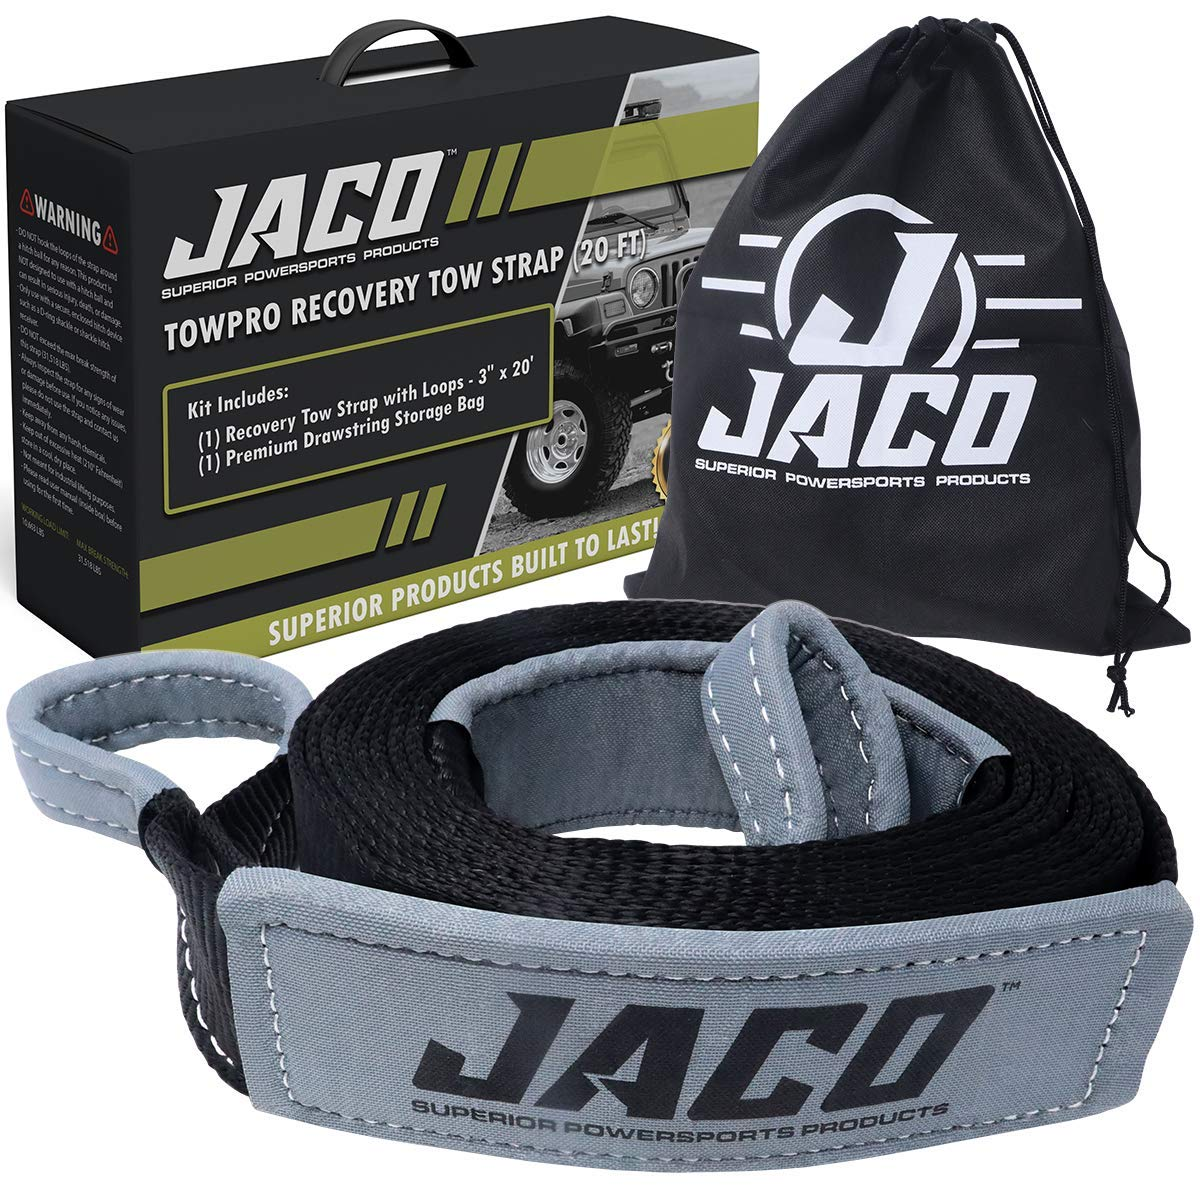 JACO TowPro Recovery Tow Strap (3 in x 20 ft) | 4x4 Trail Rated | AAR Certified Break Strength (31,518 lbs) | Heavy Duty Off Road Recovery Strap with Closed Loops | Emergency Towing Rope by JACO Superior Products